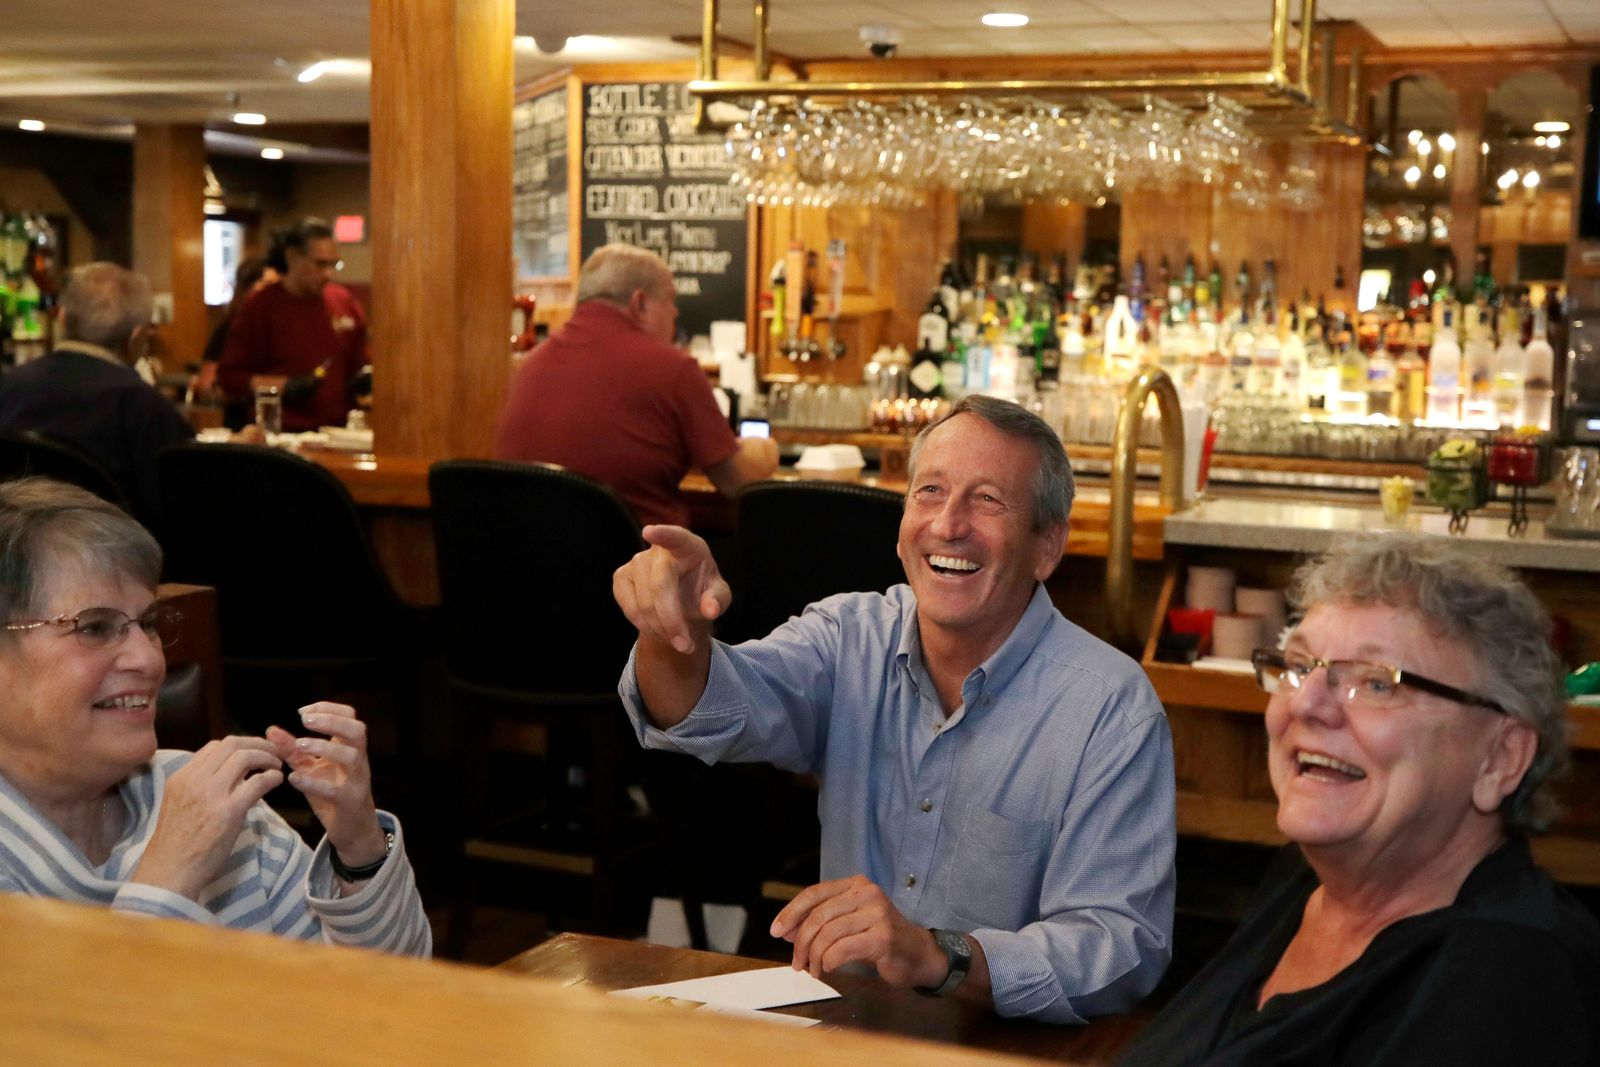 Republican presidential candidate, former South Carolina Gov. Mark Sanford chats with{ }patrons at the Puritan Backroom restaurant, as he campaigns, Thursday, Sept. 19, 2019, in Manchester, N.H. (AP Photo/Elise Amendola)